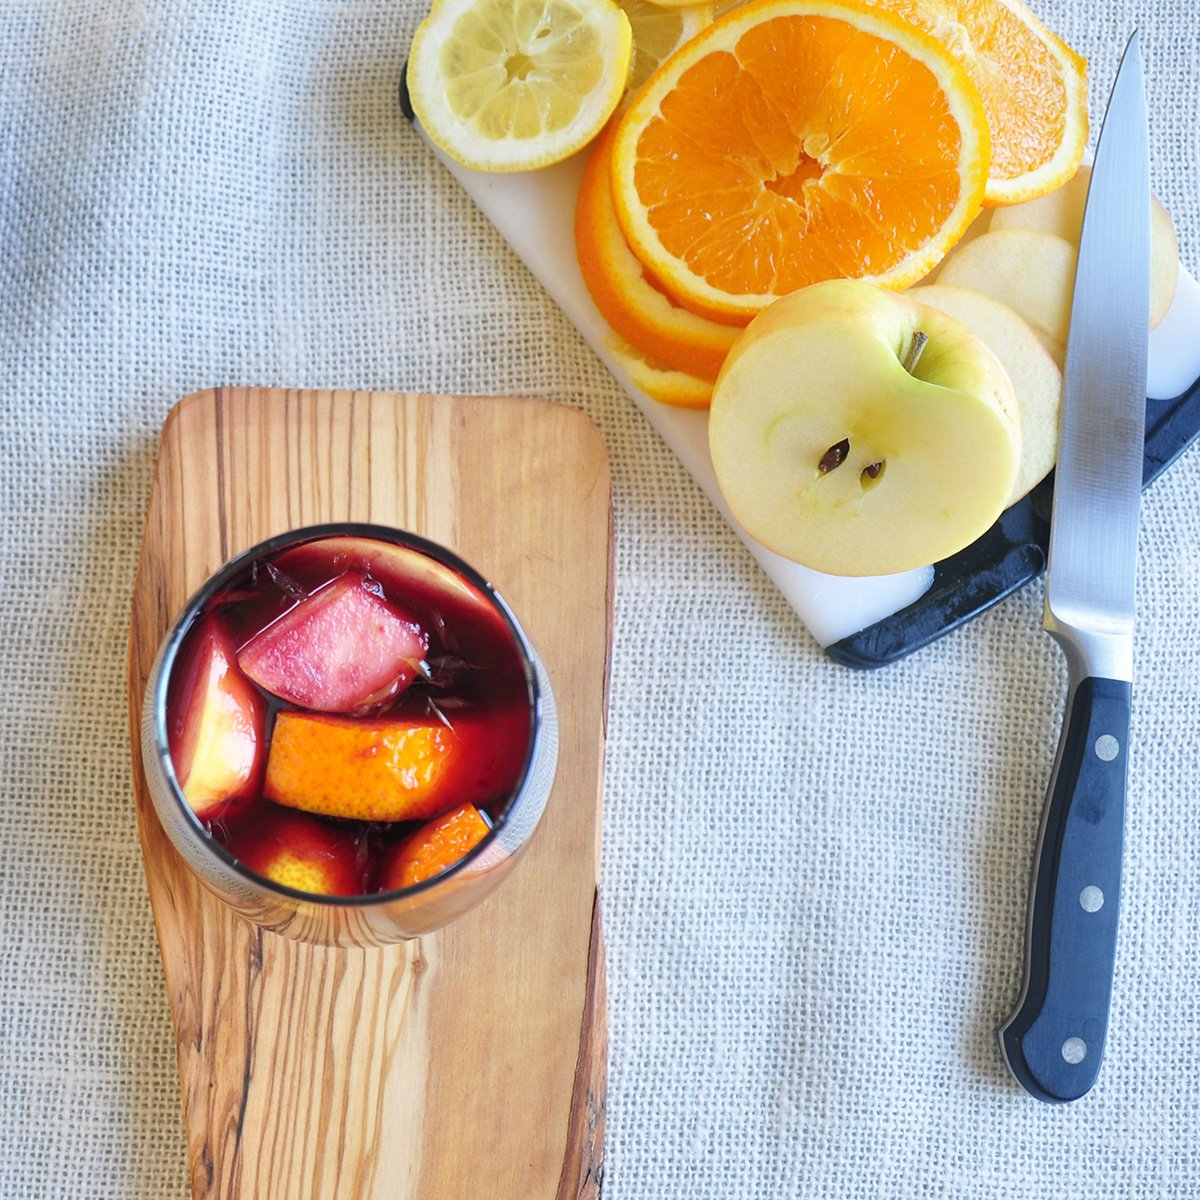 glass with sangria and fruit in it on a piece of wood. There is a cutting board with oranges, lemons and an apple on it.